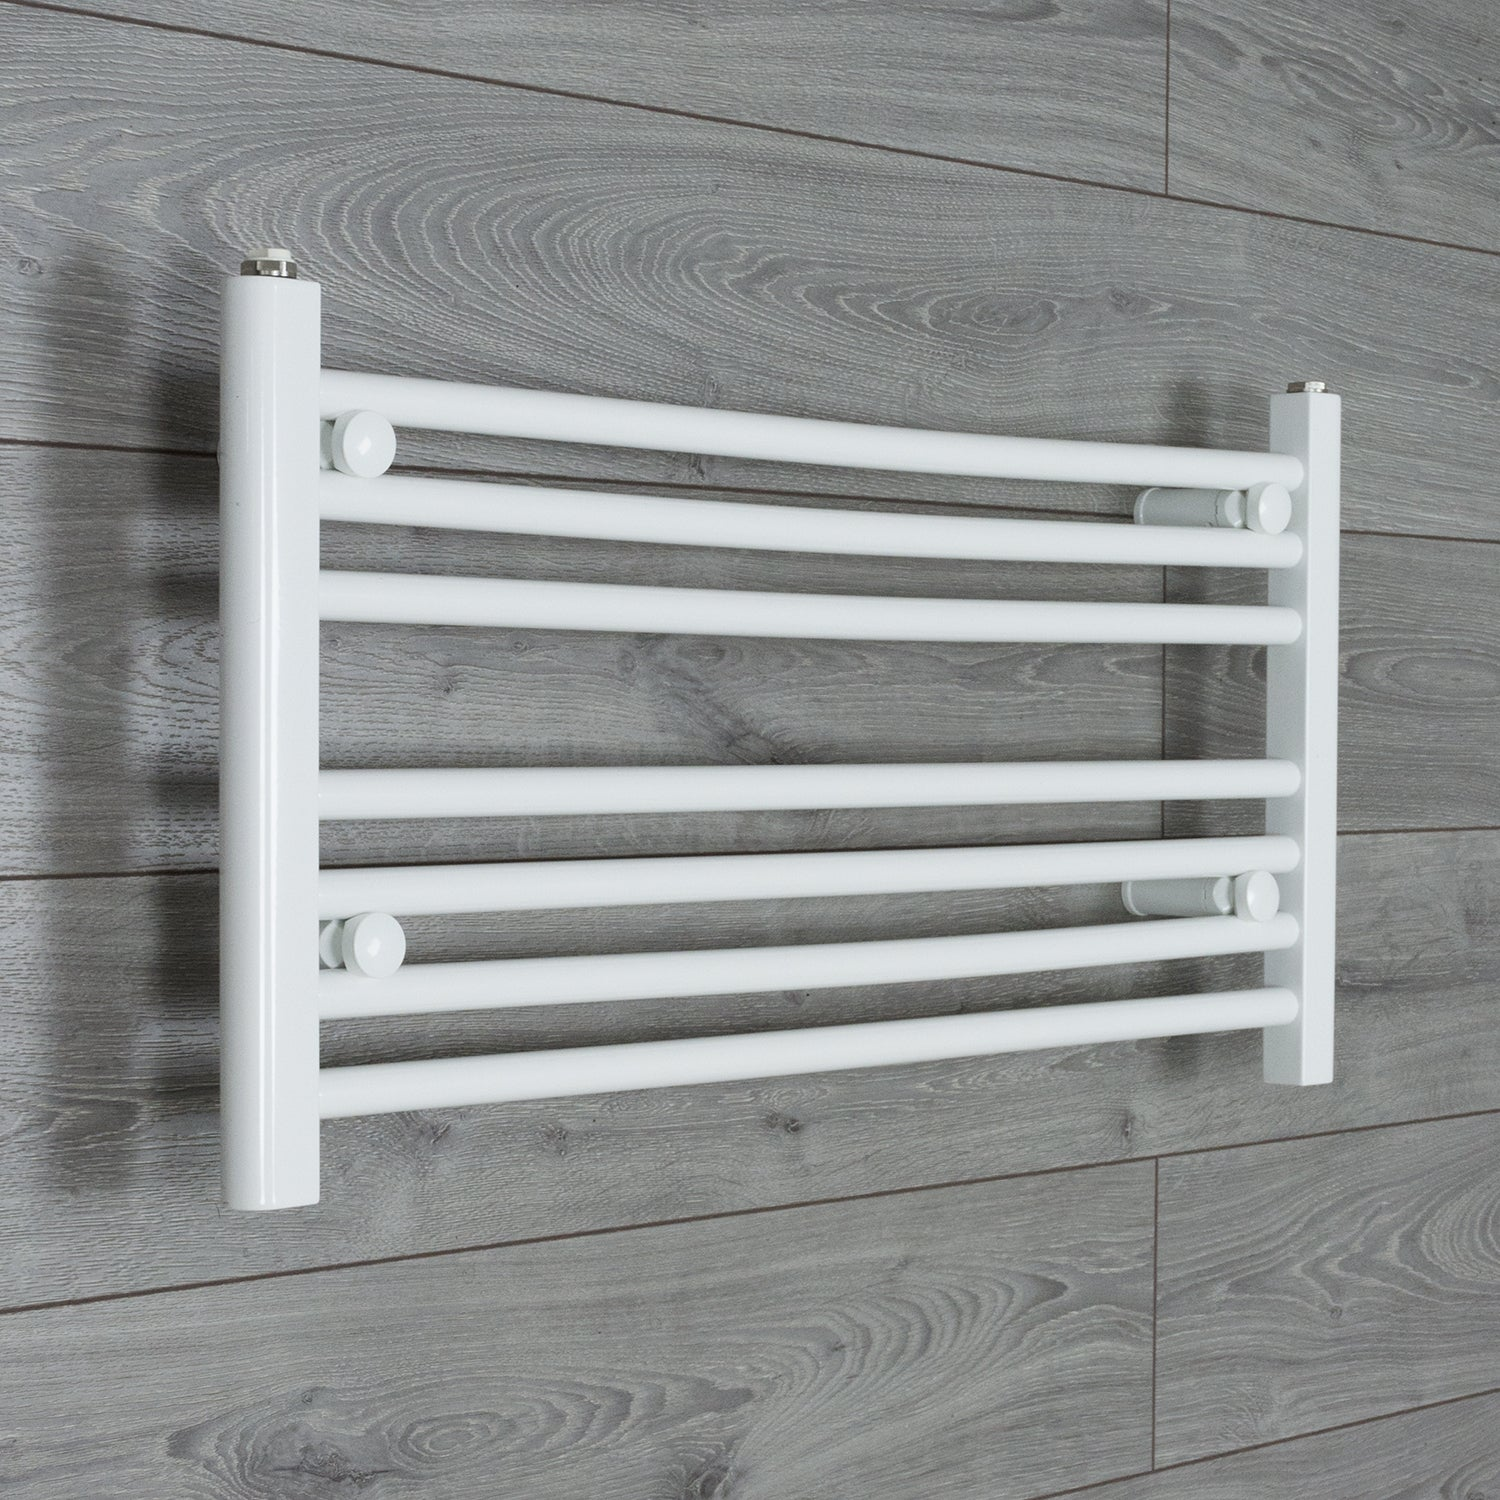 850mm Wide 400mm High Flat WHITE Pre-Filled Electric Heated Towel Rail Radiator HTR